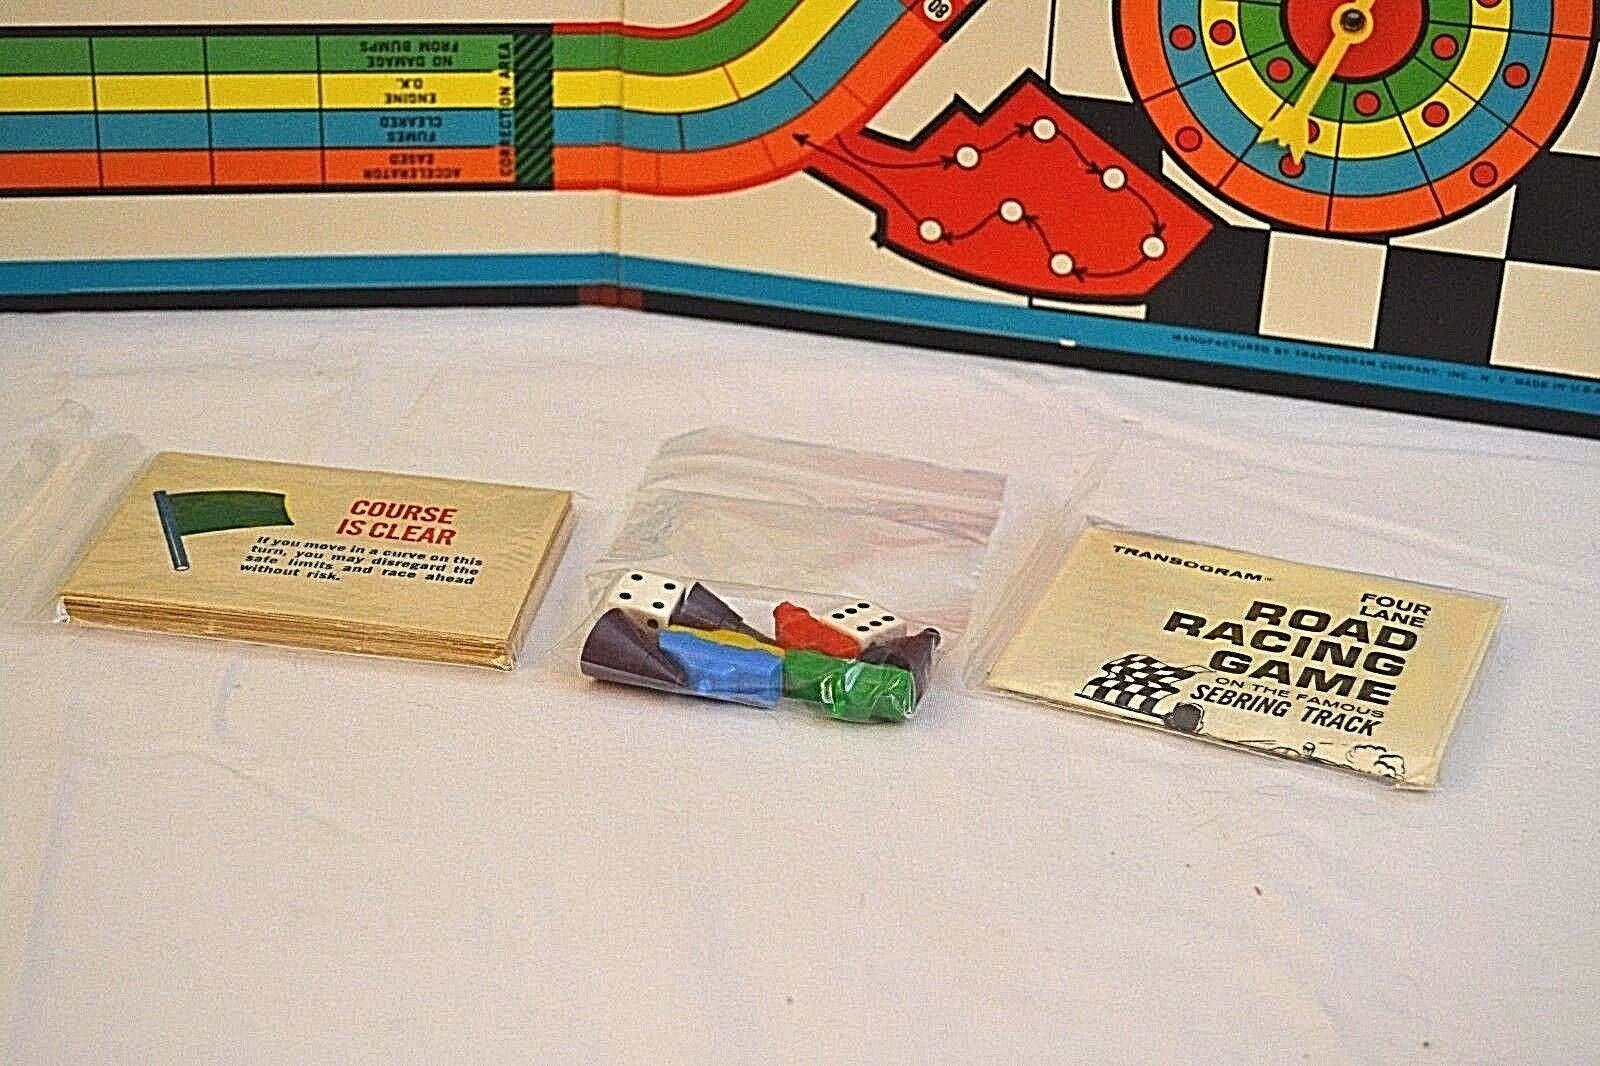 Transogram Rare Four Lane Road Racing Game on the Famous Sebring Track 1963  image 8